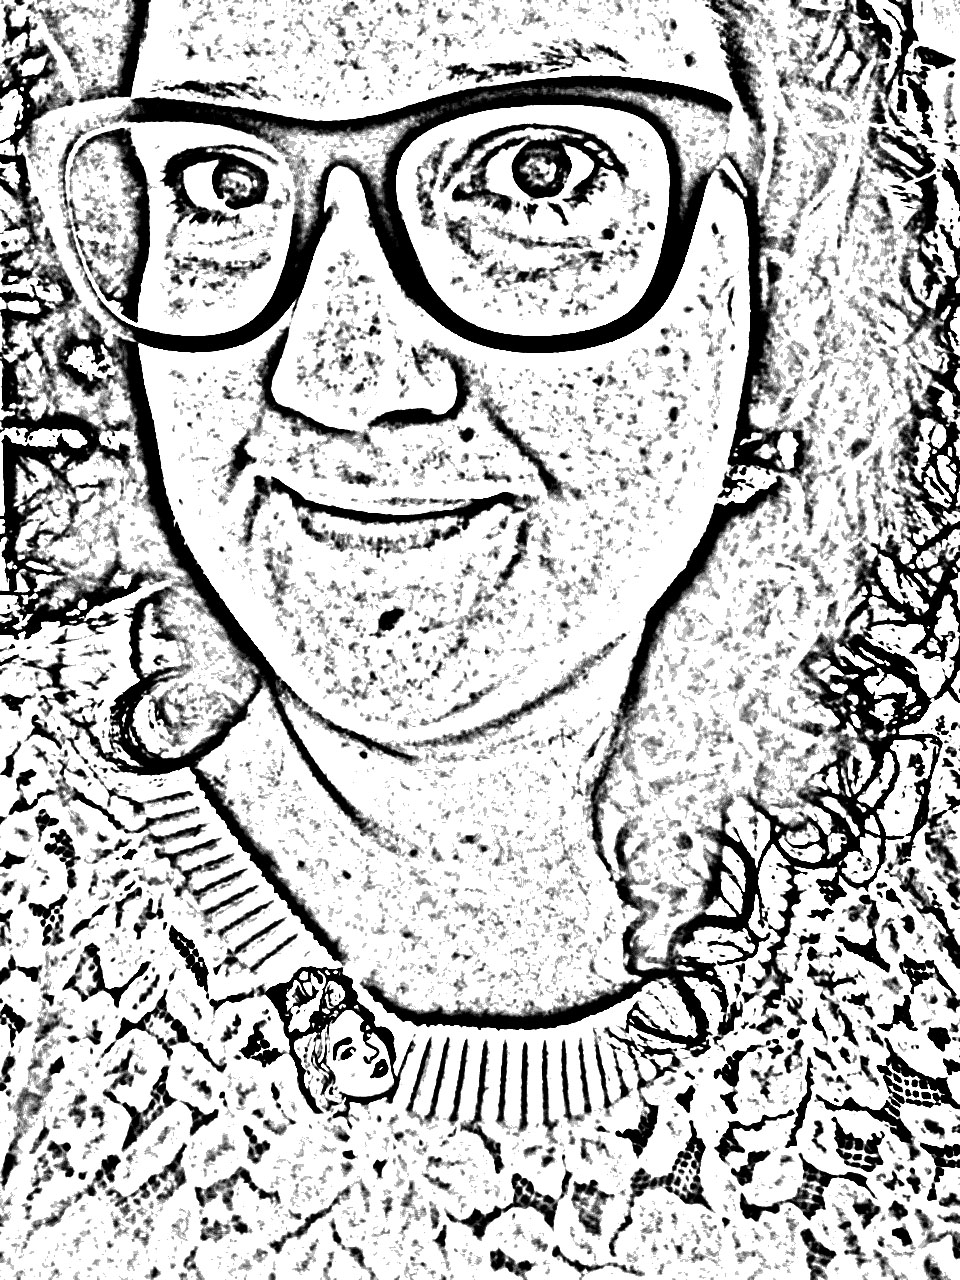 finding u0026 creating coloring pages coloring stress relief in an